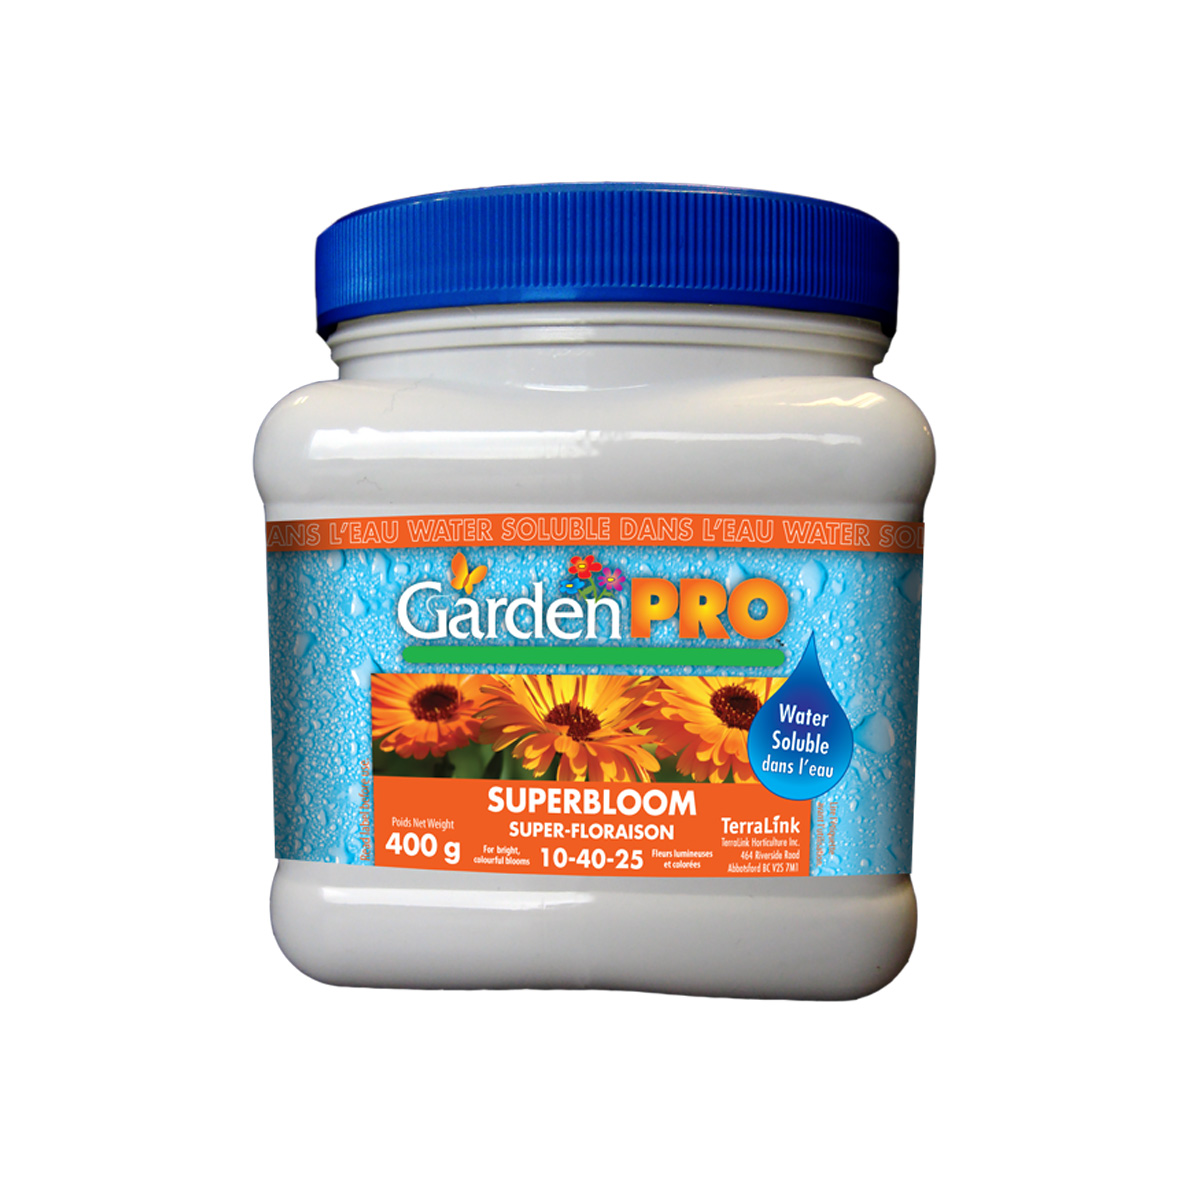 Garden Pro Water Soluble Superbloom Fertilizer 10-40-25 400g